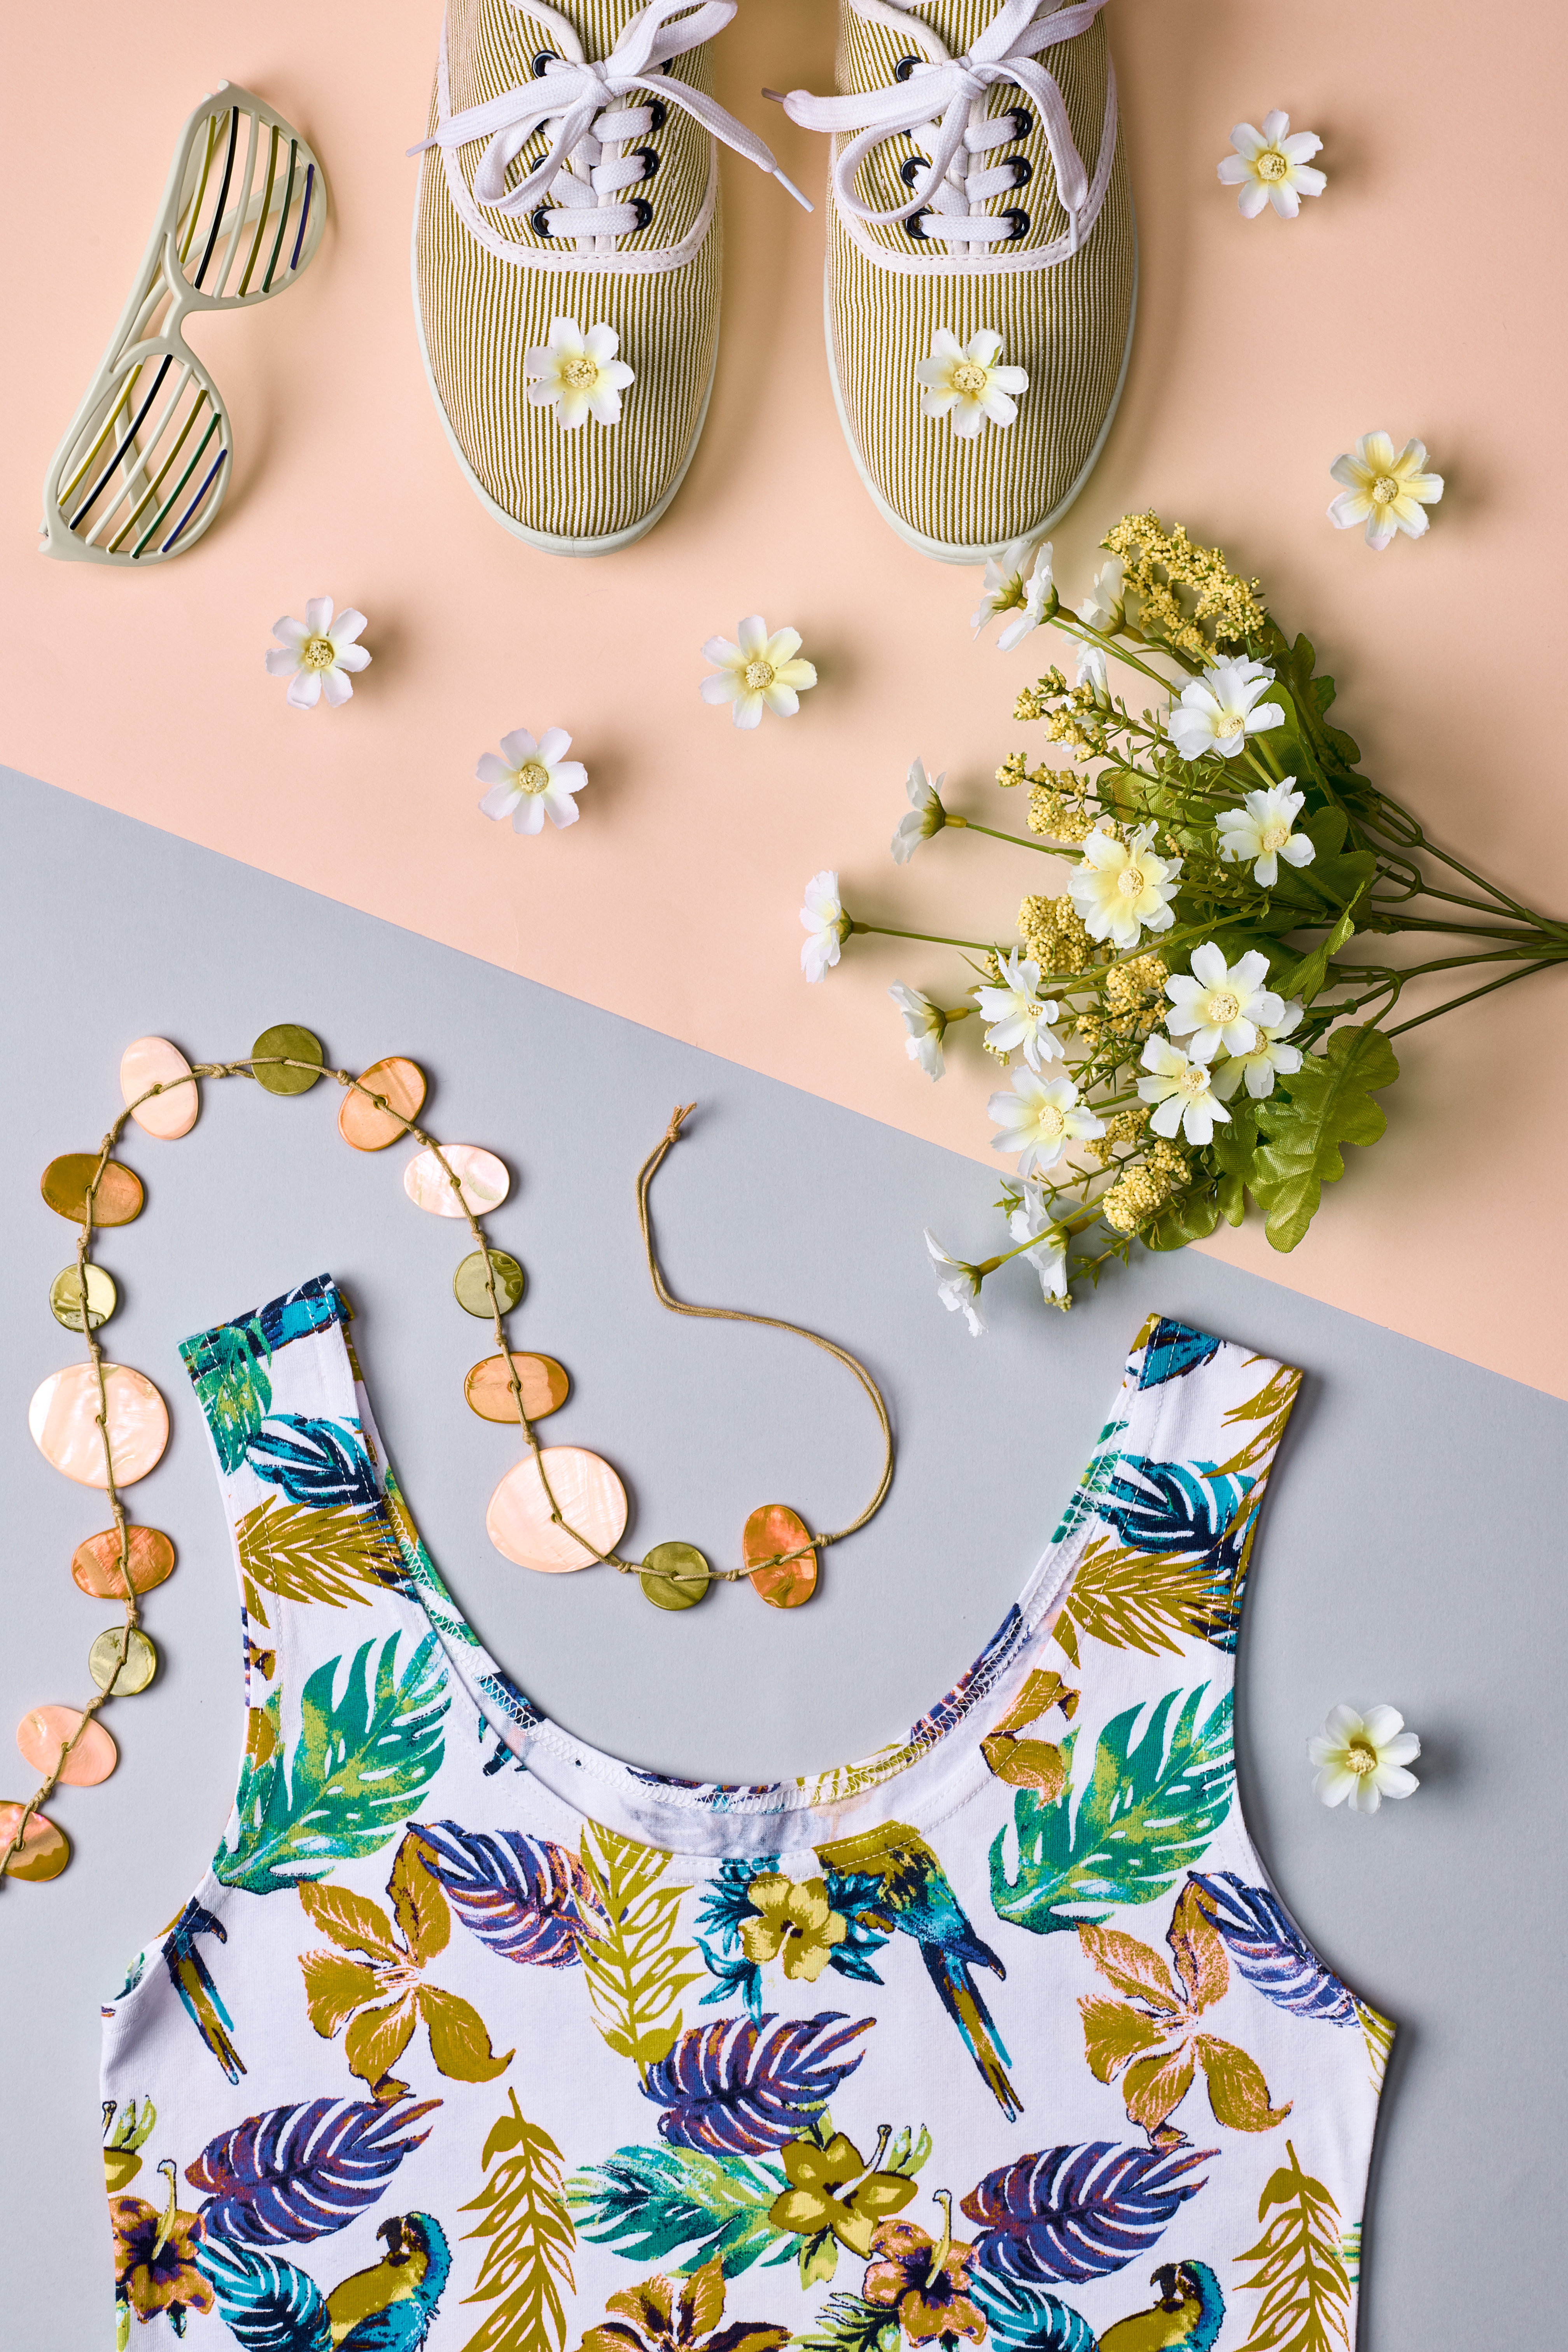 Overhead outfit Fashion girl clothes set, accessories. Creative hipster look, pastel colors. Stylish gumshoes, dress, sunglasses, flowers.Unusual modern summer essentials.Top view, pink background